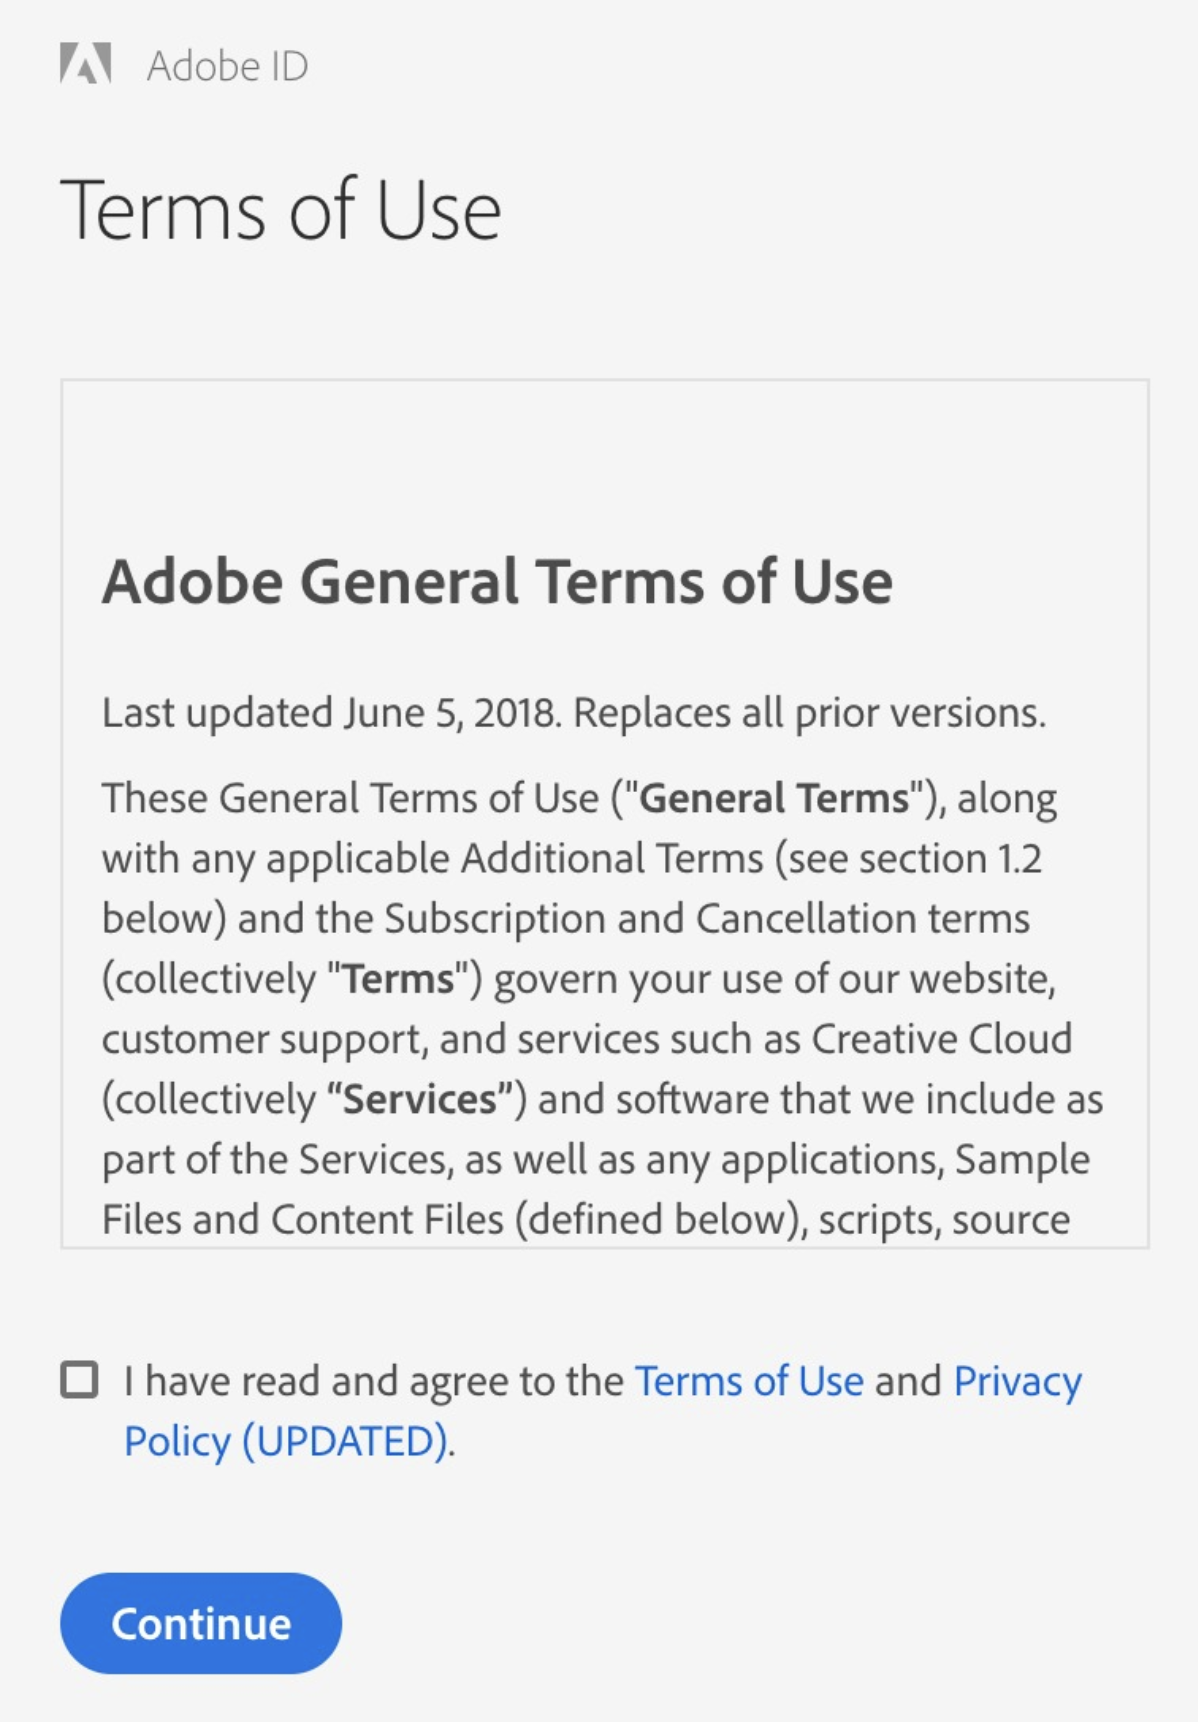 2---Adobe-terms-of-use.png